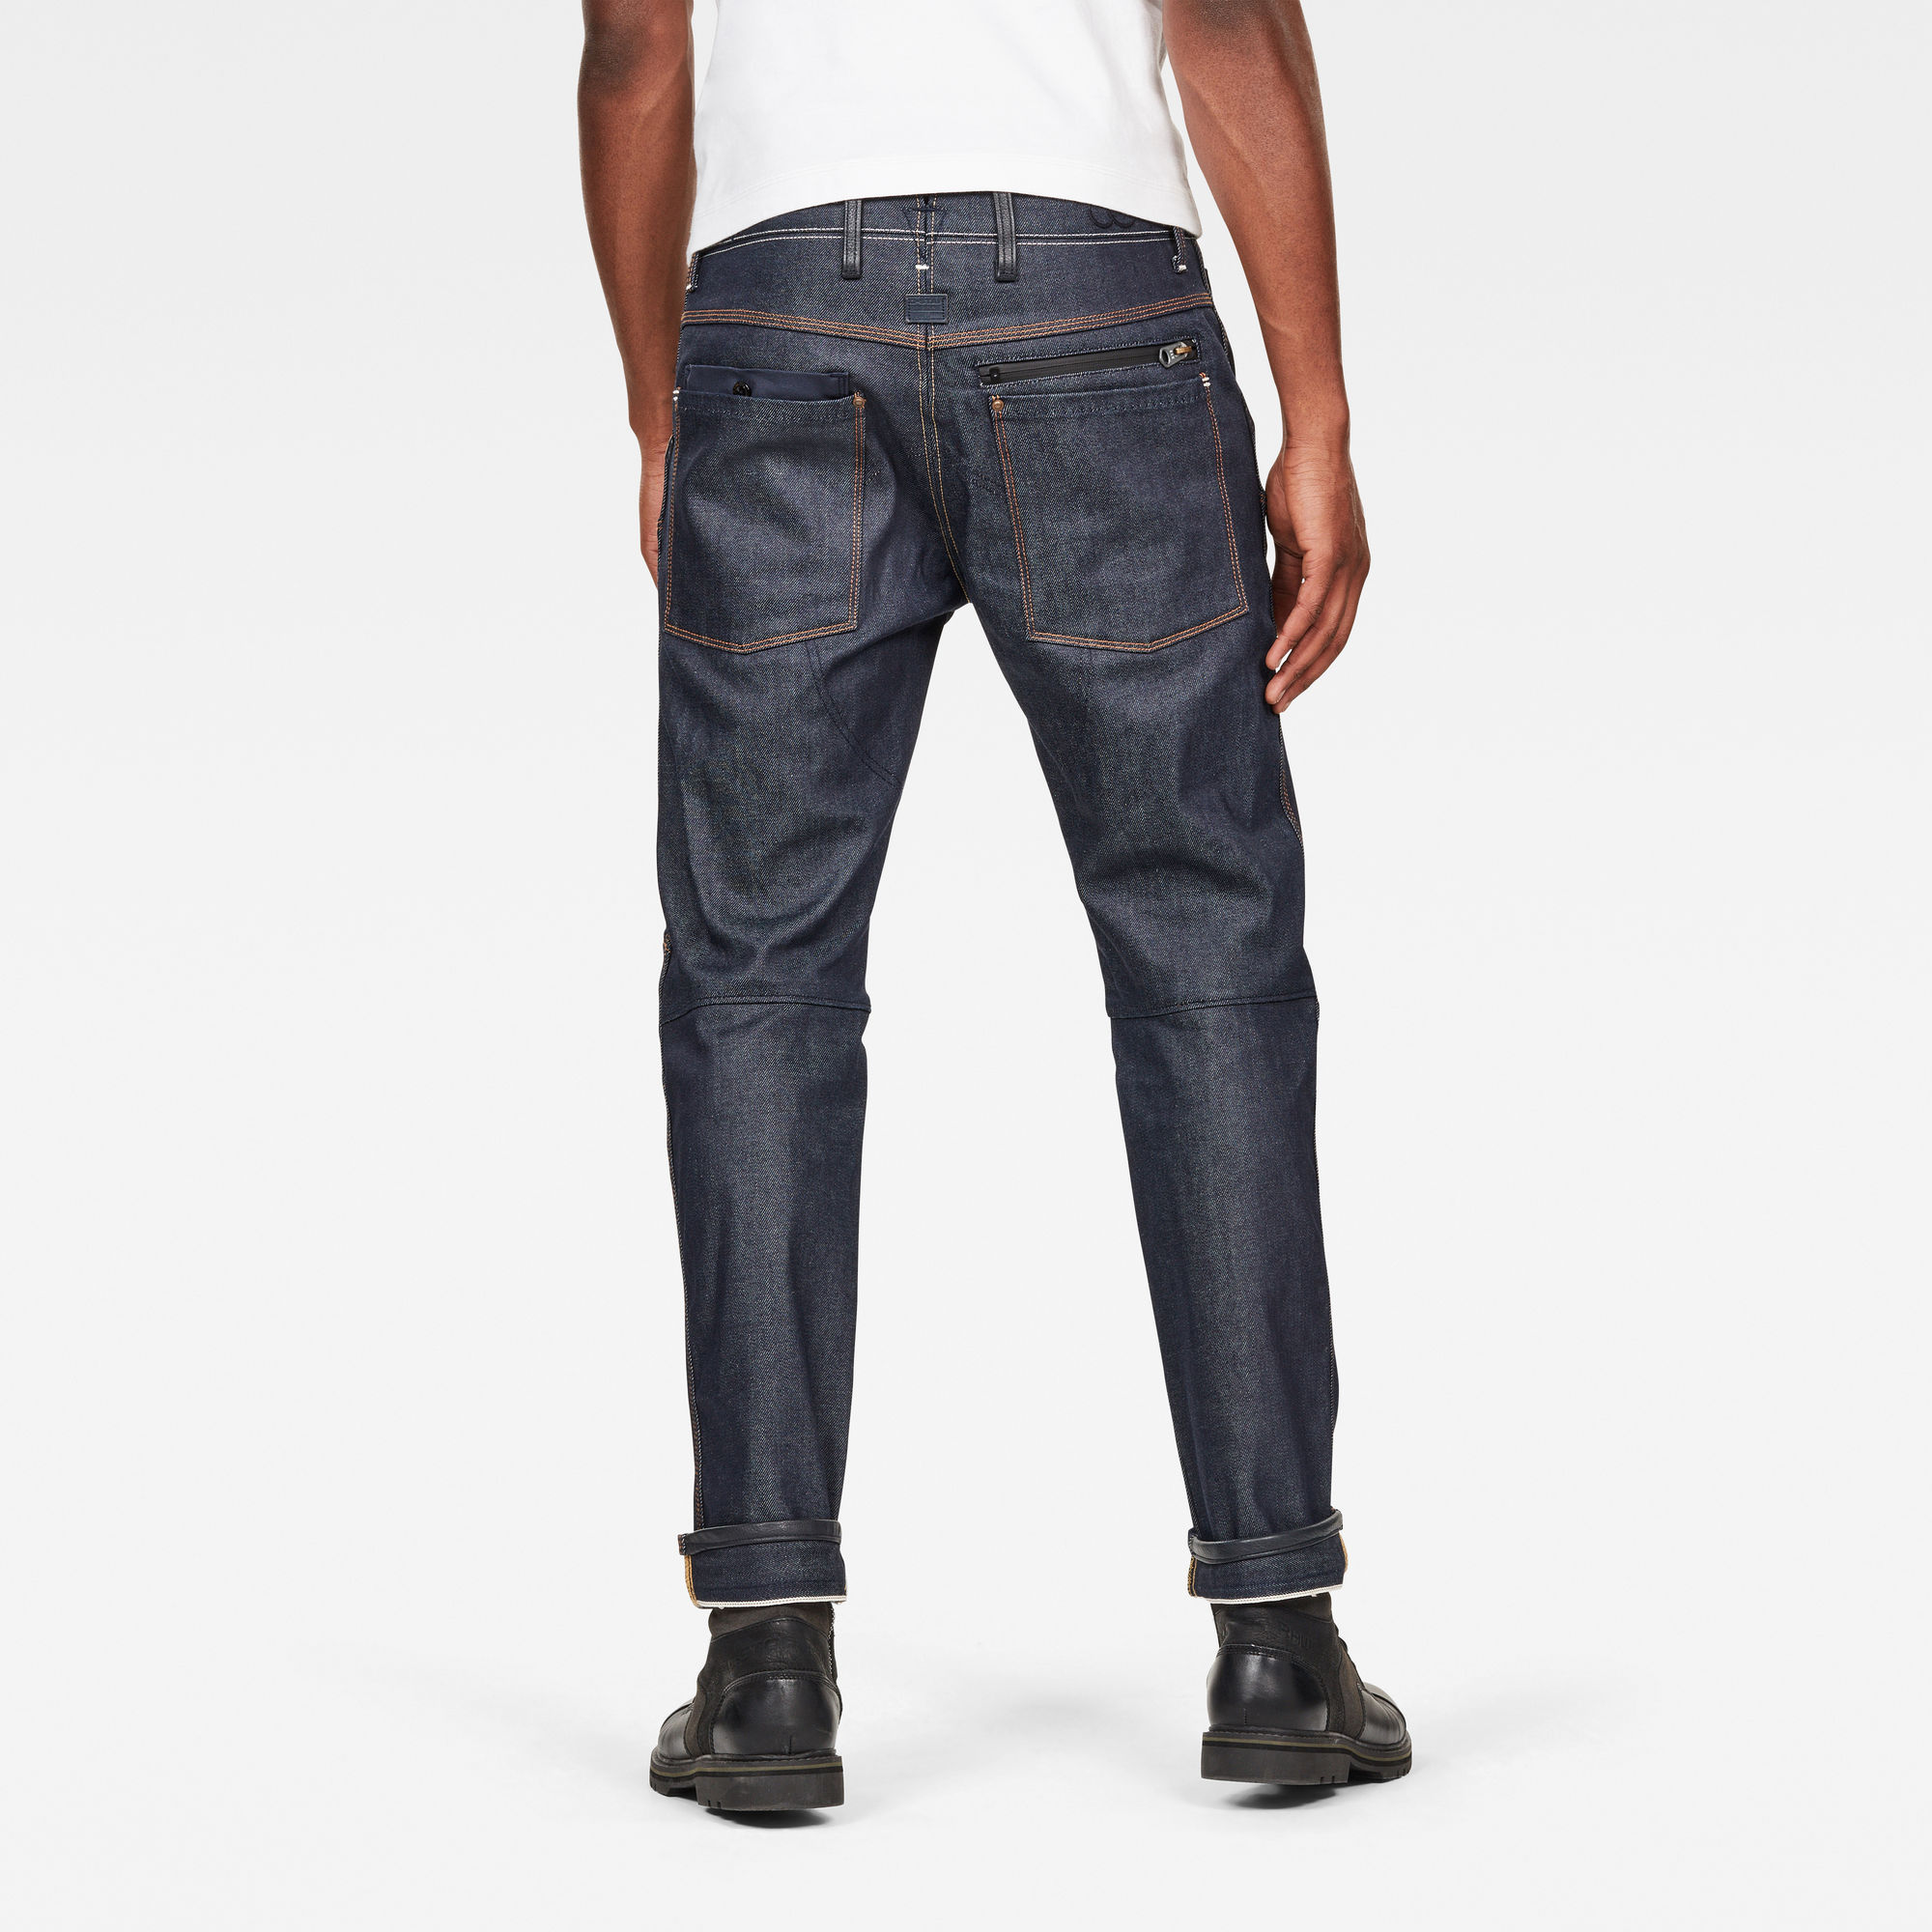 G-Star RAW 30 Years 5620 3D Straight Tapered Jeans